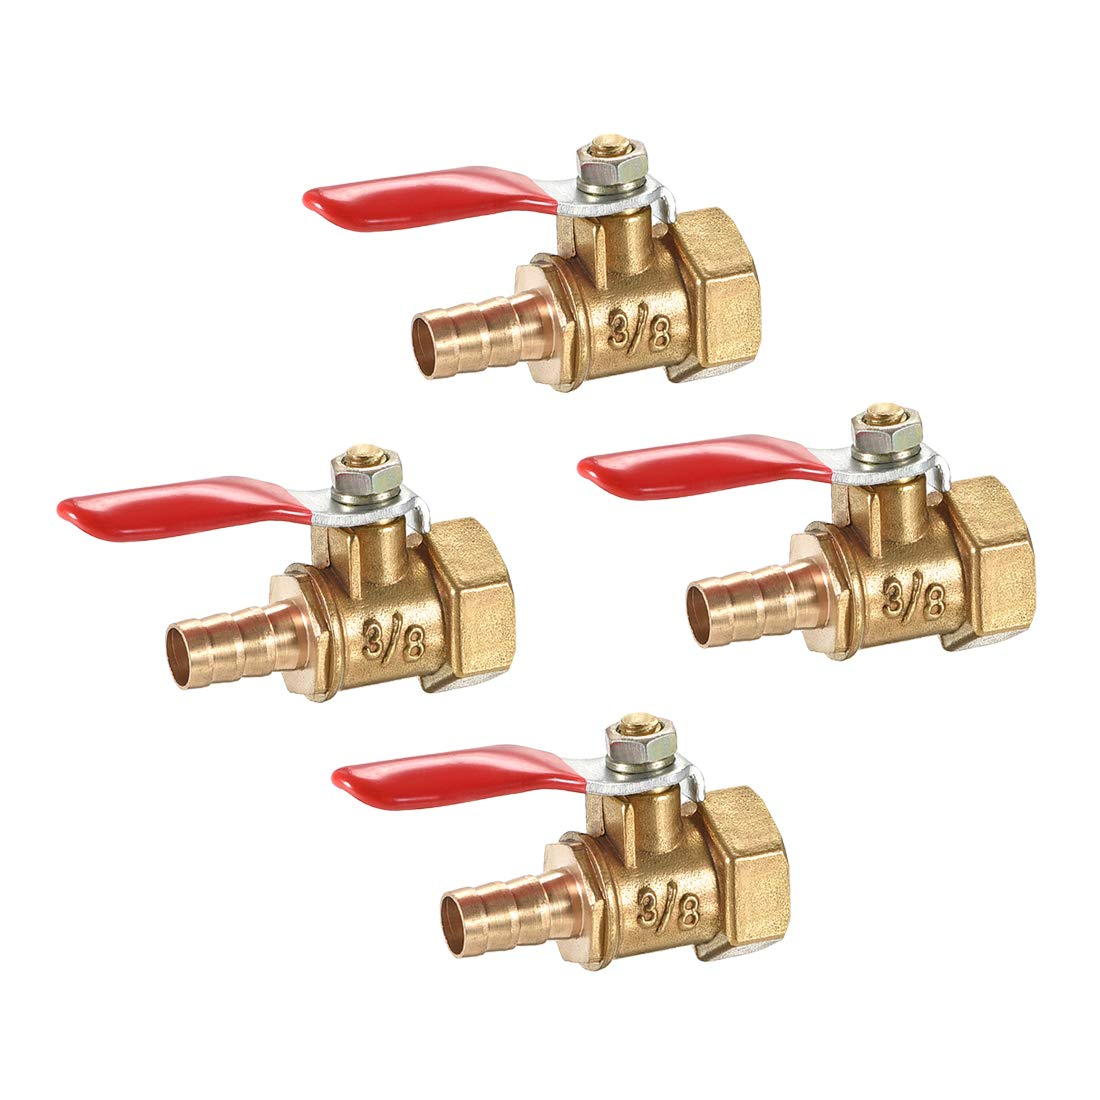 Ball Valve Female to Female Thread Brass Pipe Ball Valve Two Way Ball Valve Shut-off Valve for Water Oil and Gas G3//8